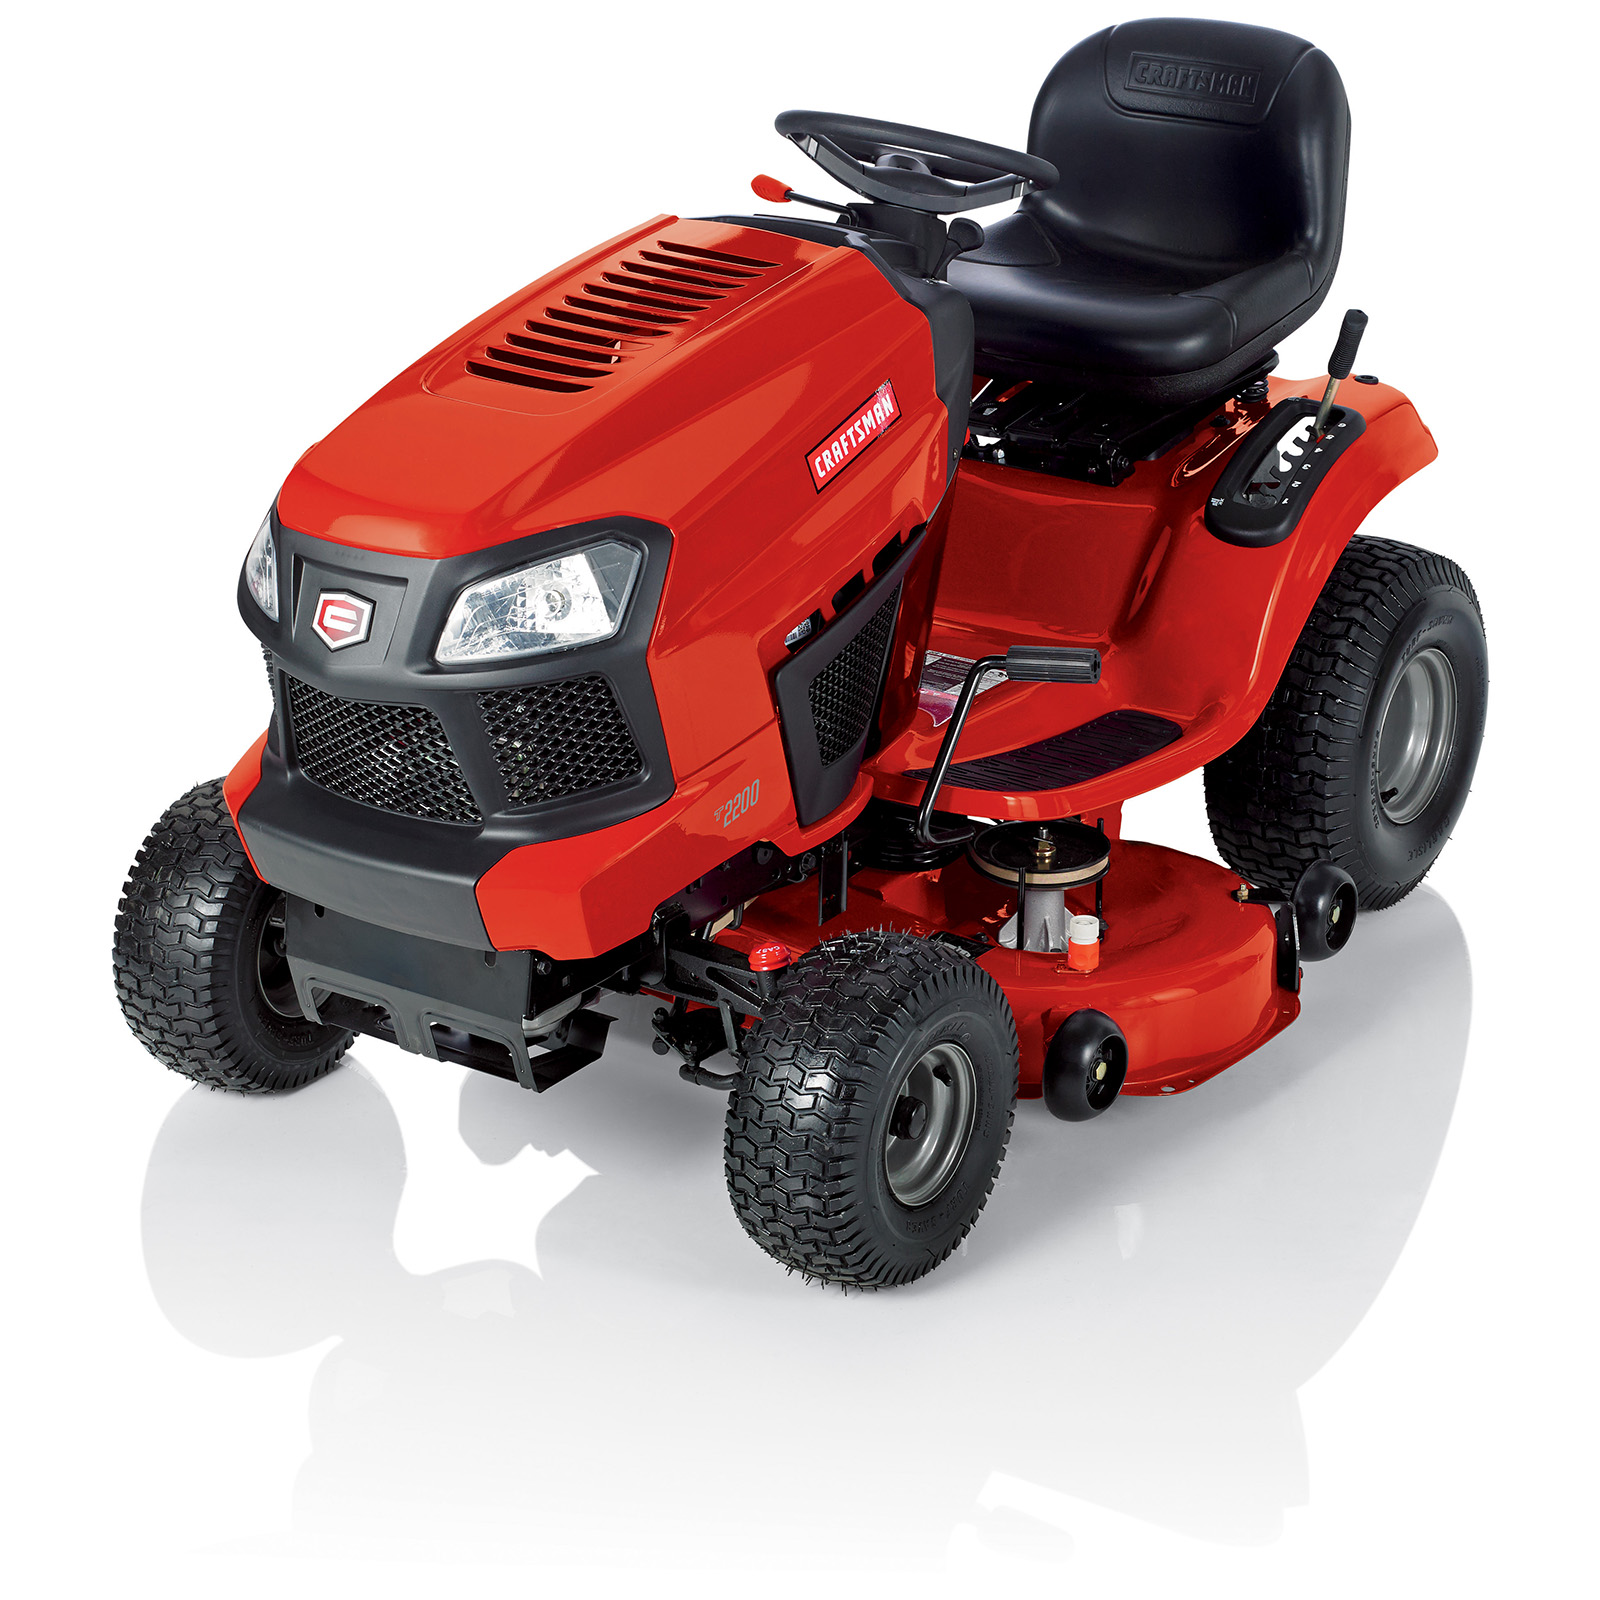 Craftsman 19HP 42 in. Turn Tight® Automatic Riding Mower